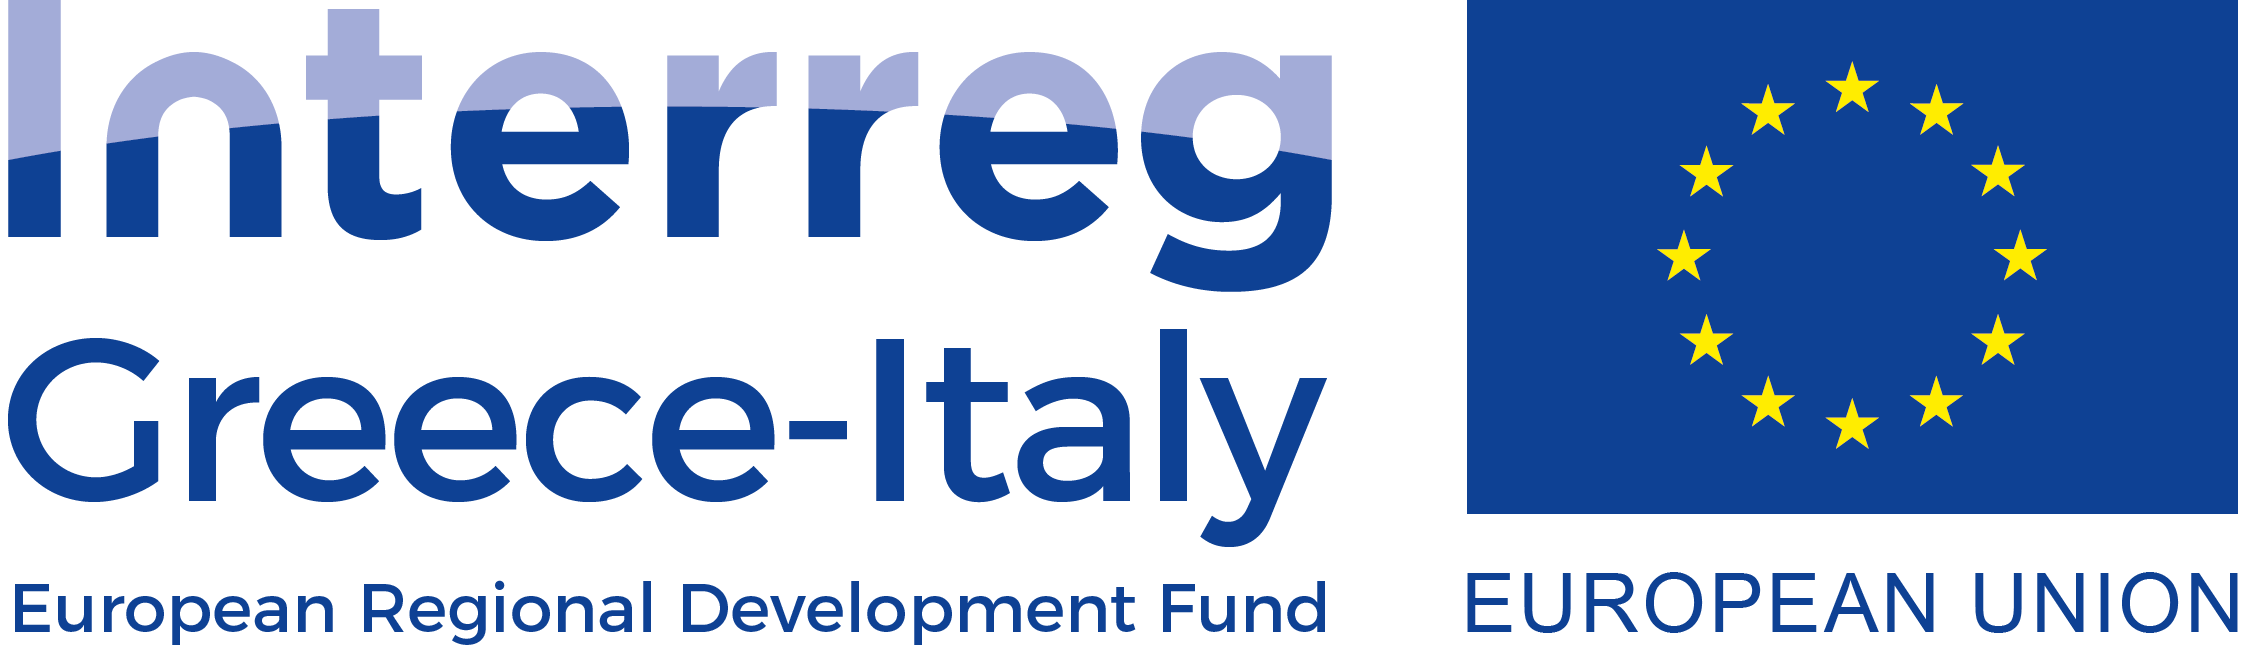 Logo Interreg Official 300dpi European Regional Development Fund and EUROPEAN UNION